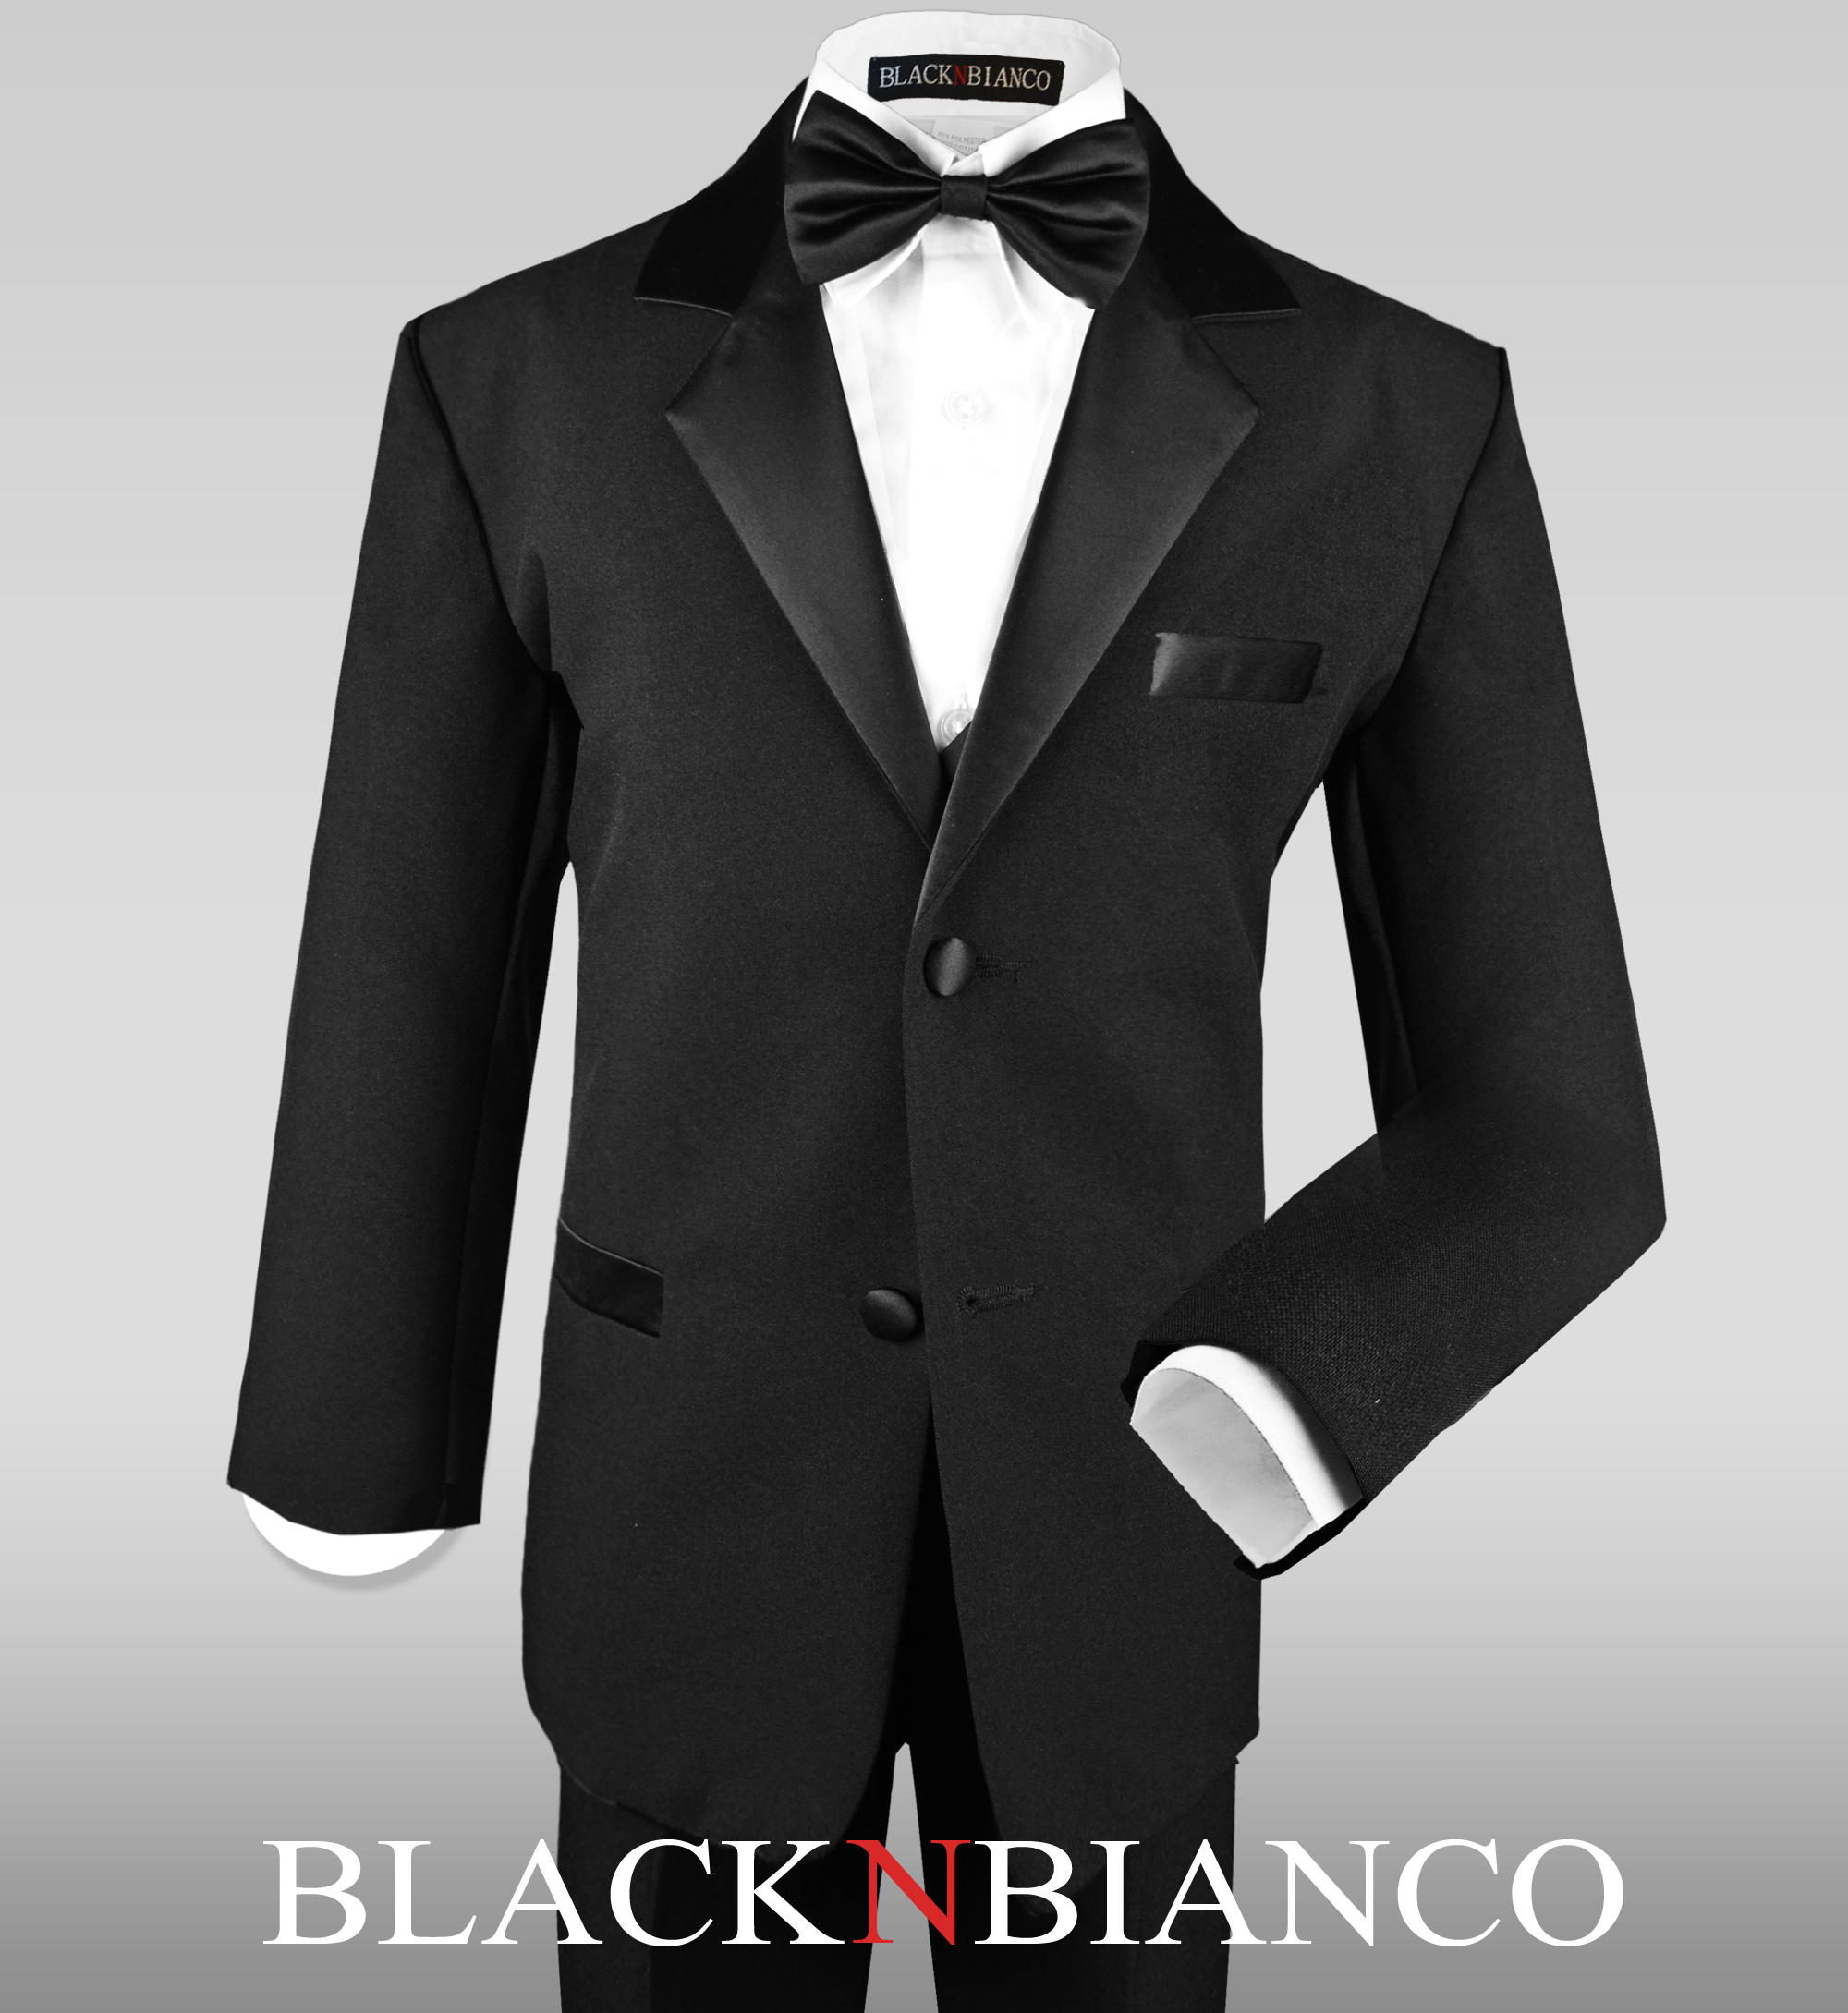 wedding planning | BLACK N BIANCO Blog